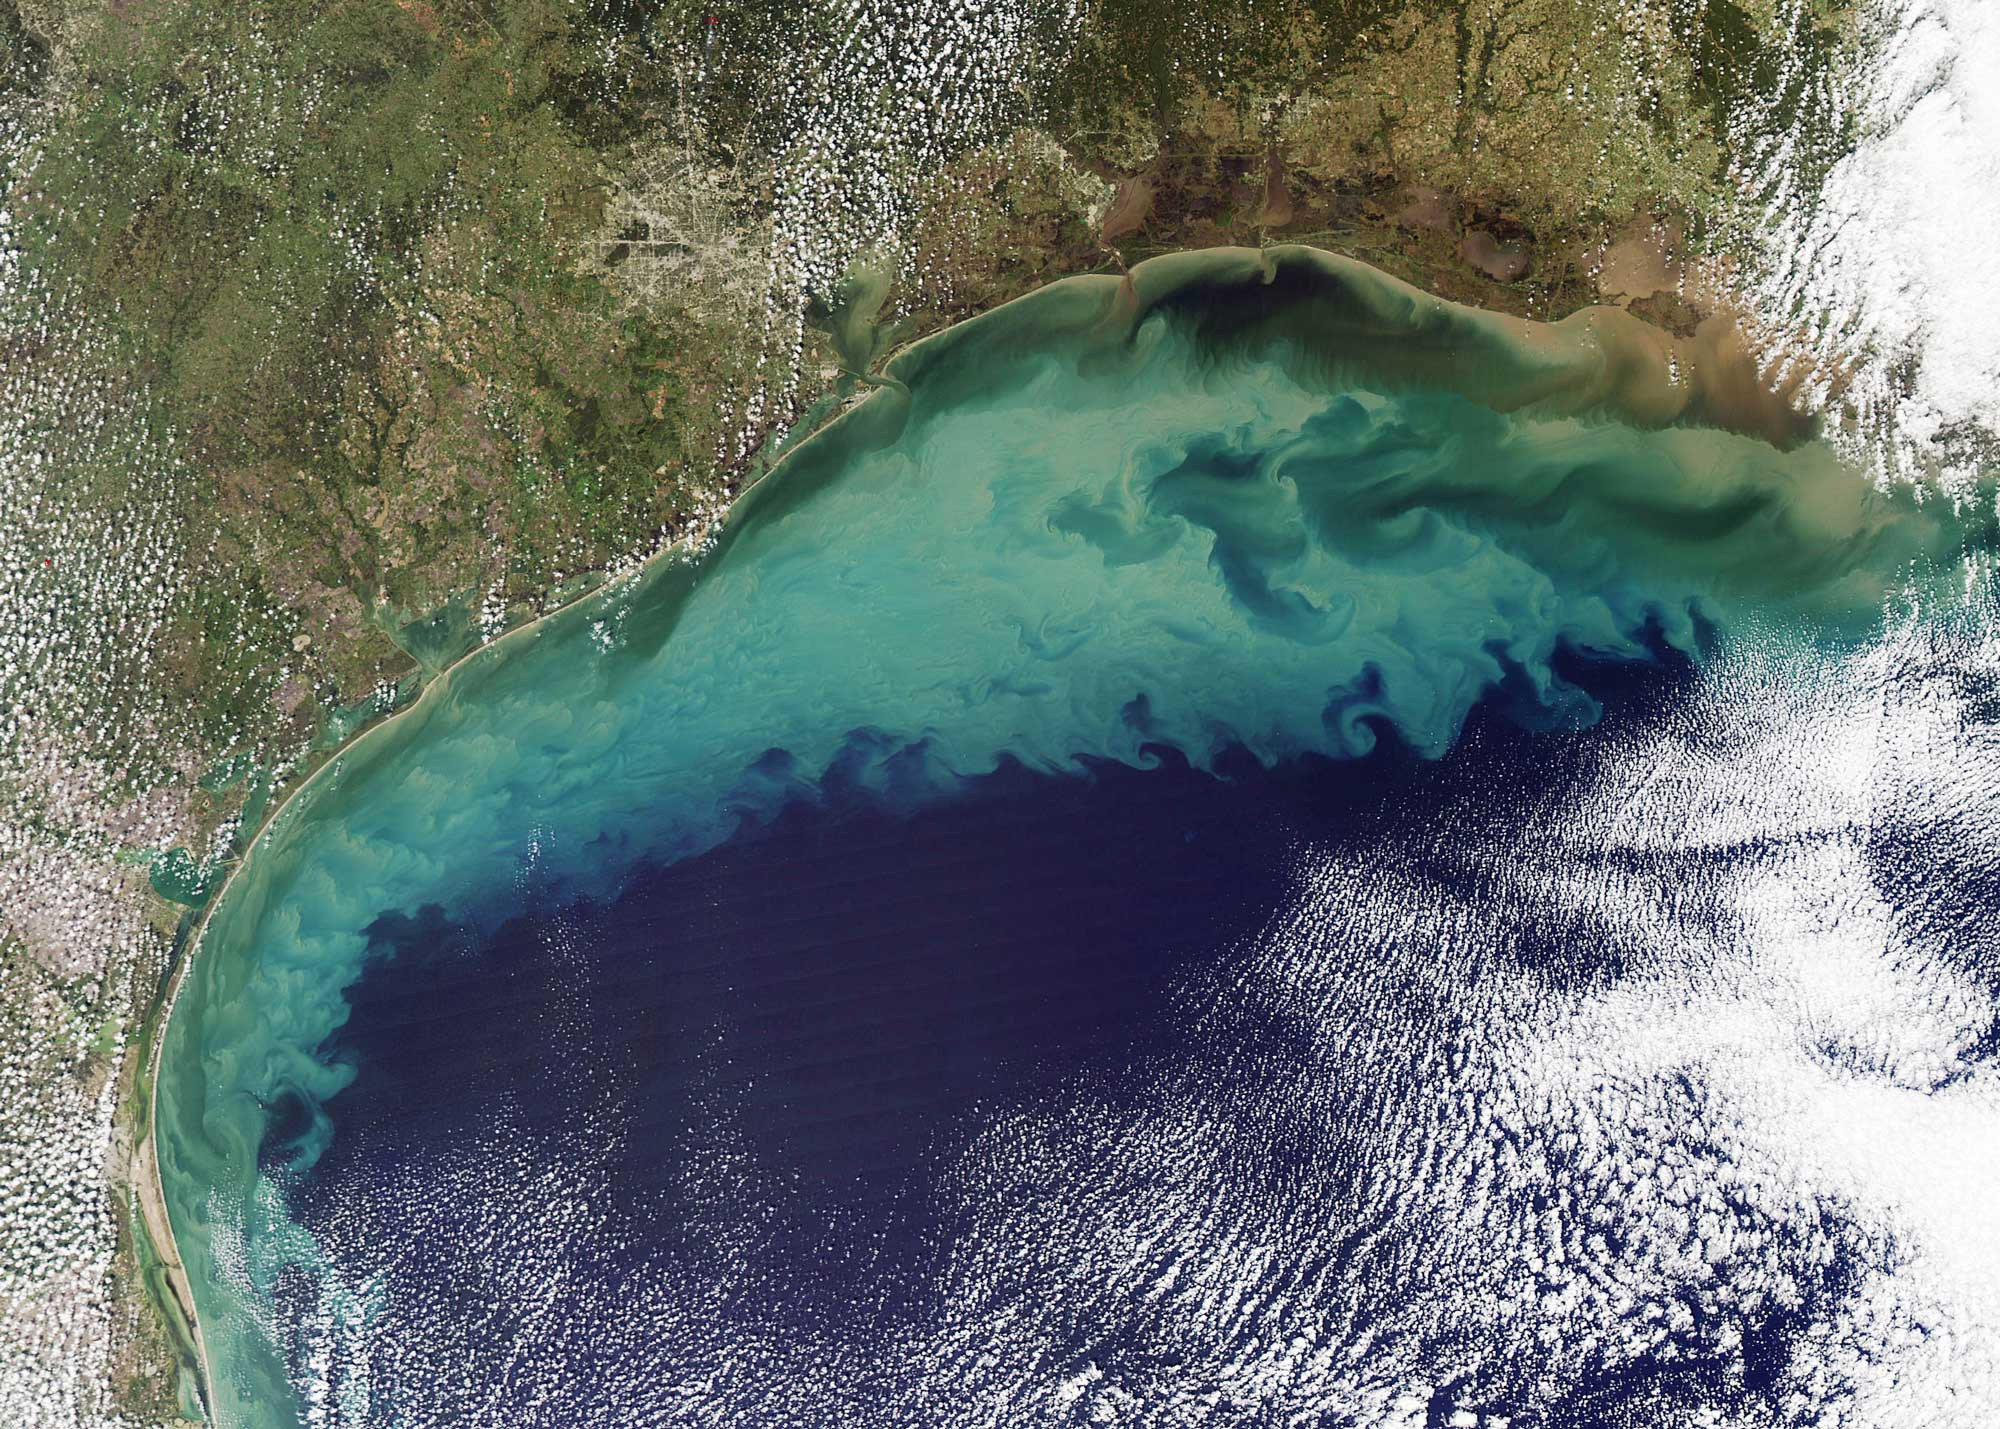 2009 satellite image of the Gulf of Mexico. Much of the dirt that colours the water is likely re-suspended sediment dredged up from the sea floor in shallow waters. The tan-green sediment-coloured water transitions to clearer dark blue water near the edge of the continental shelf where the water becomes deeper. The ocean turbulence that brought the sediment to the surface is readily evident in the textured waves and eddies within the tan and green waters. Image credit: By Jeff Schmaltz (NASA Earth Observatory) [Public domain], via Wikimedia Commons